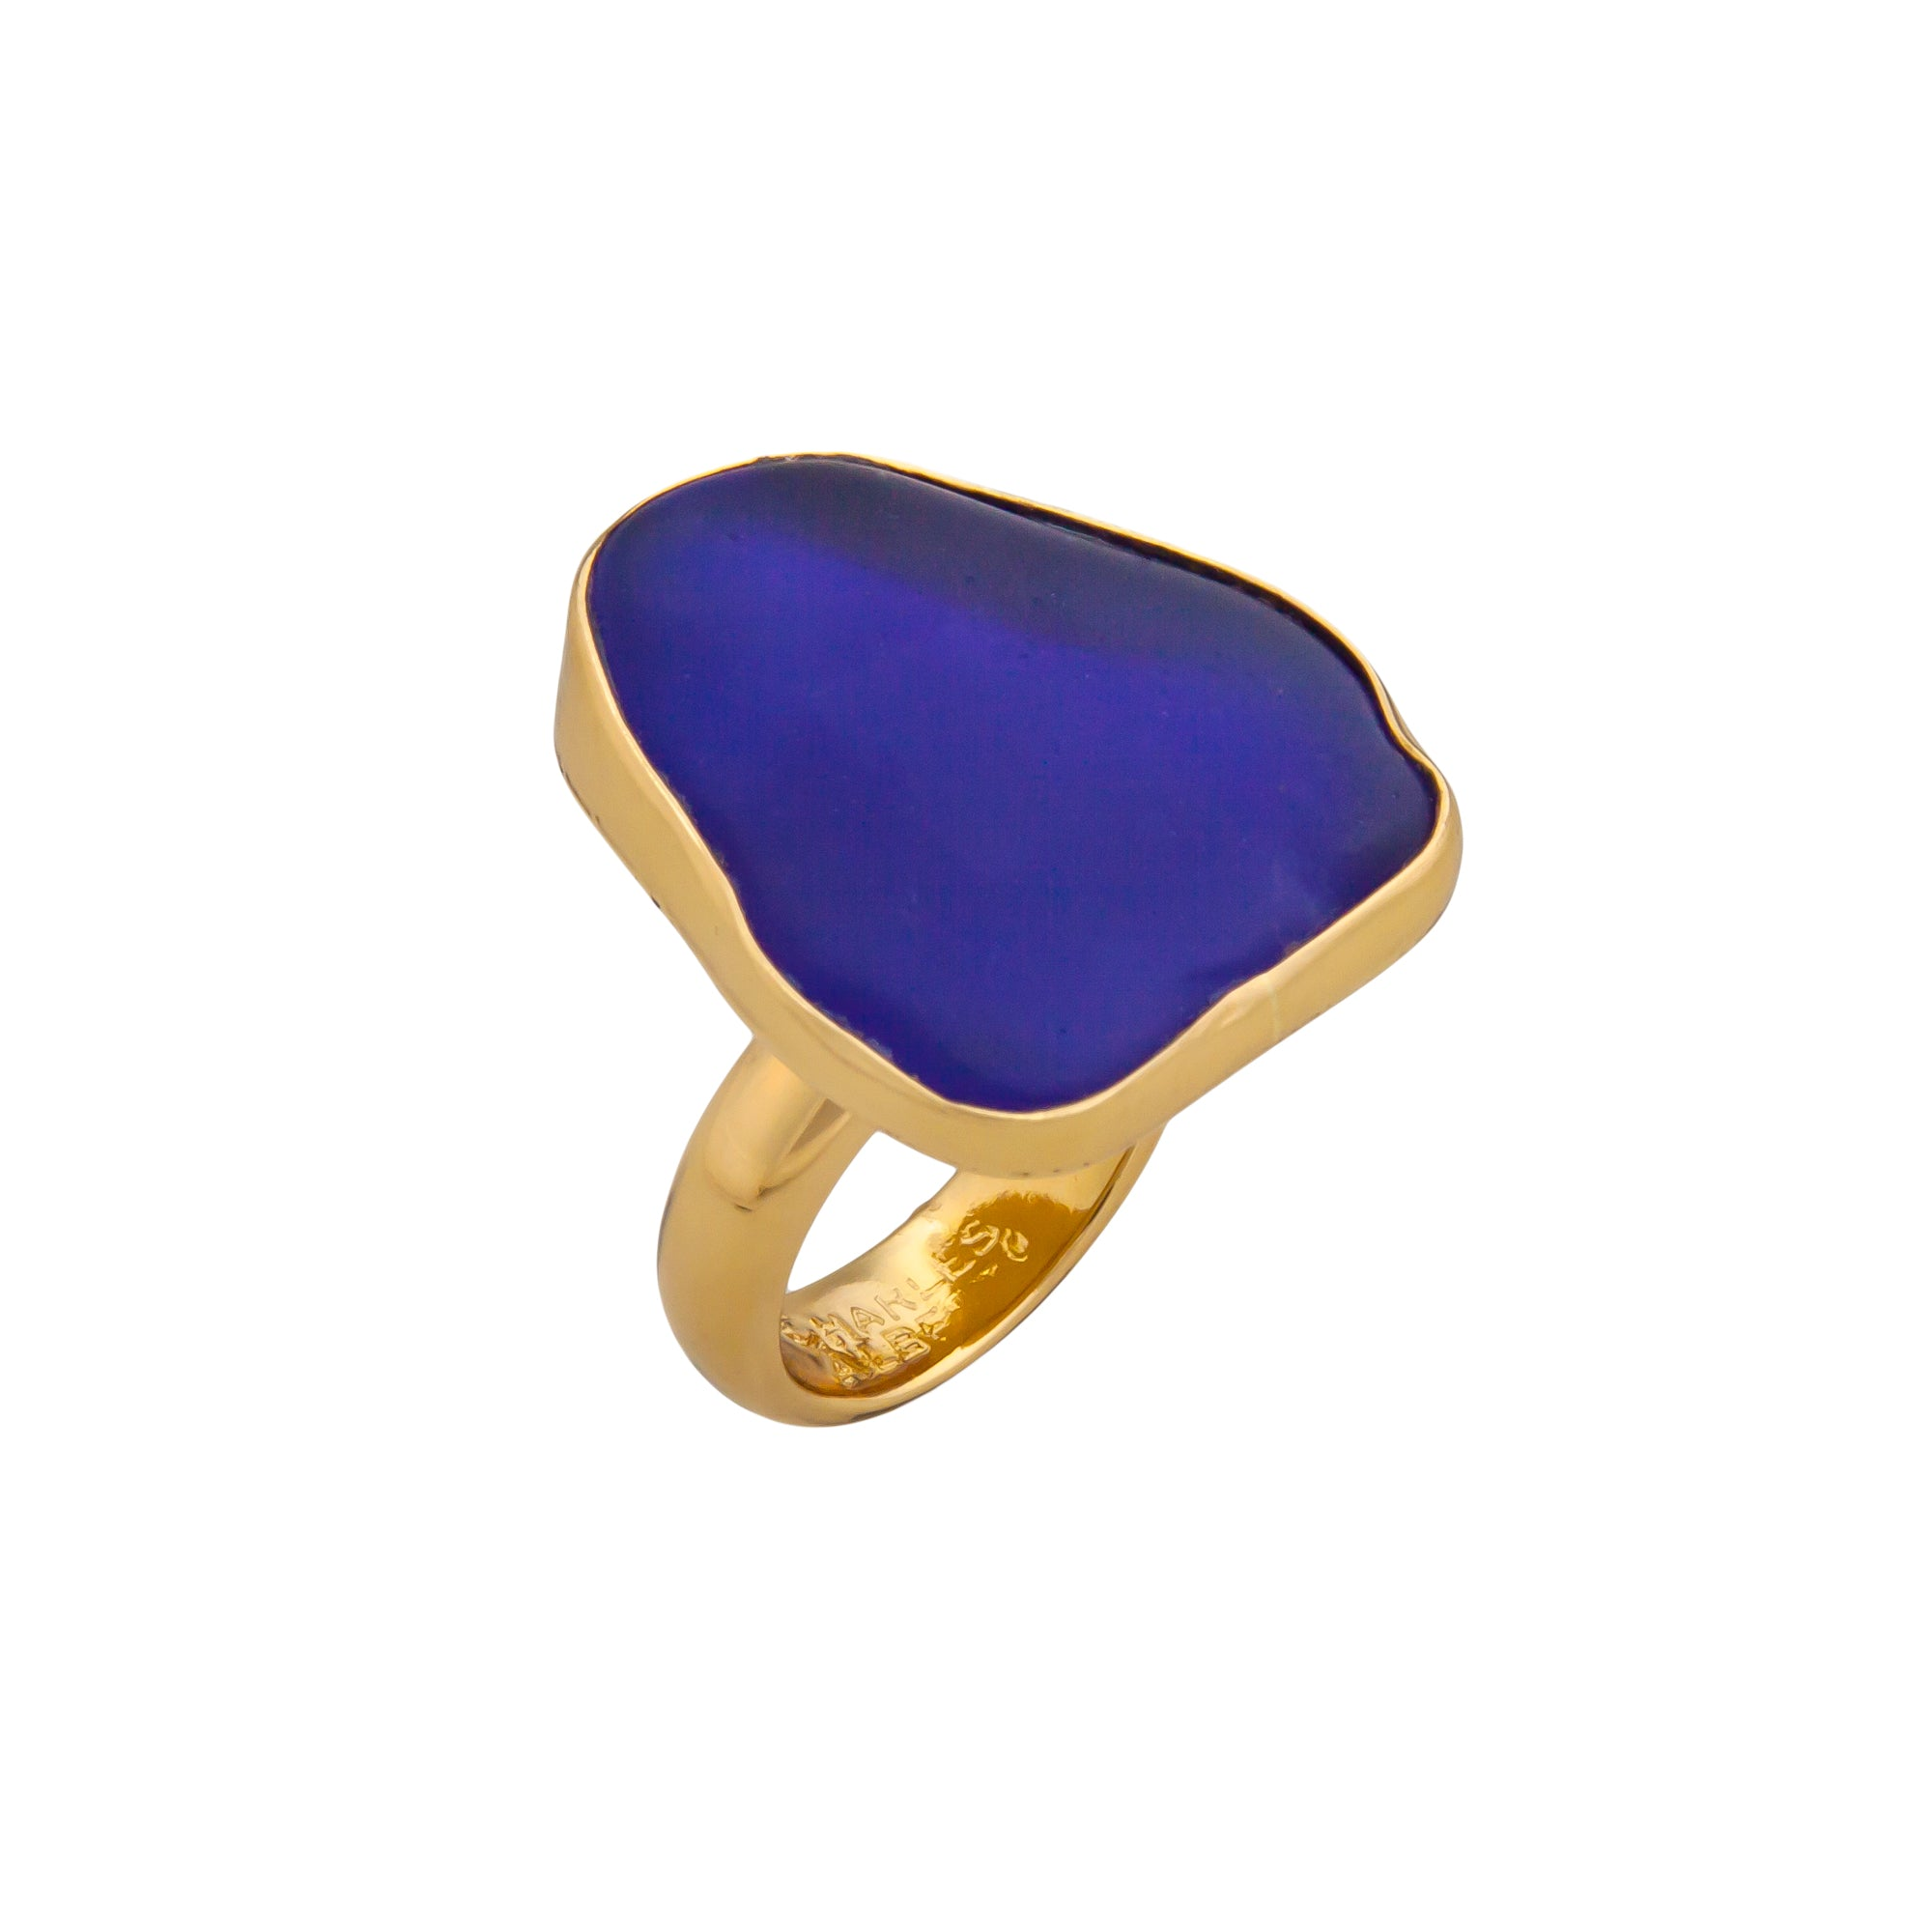 Alchemia Cobalt Blue Recycled Glass Adjustable Ring | Charles Albert Jewelry